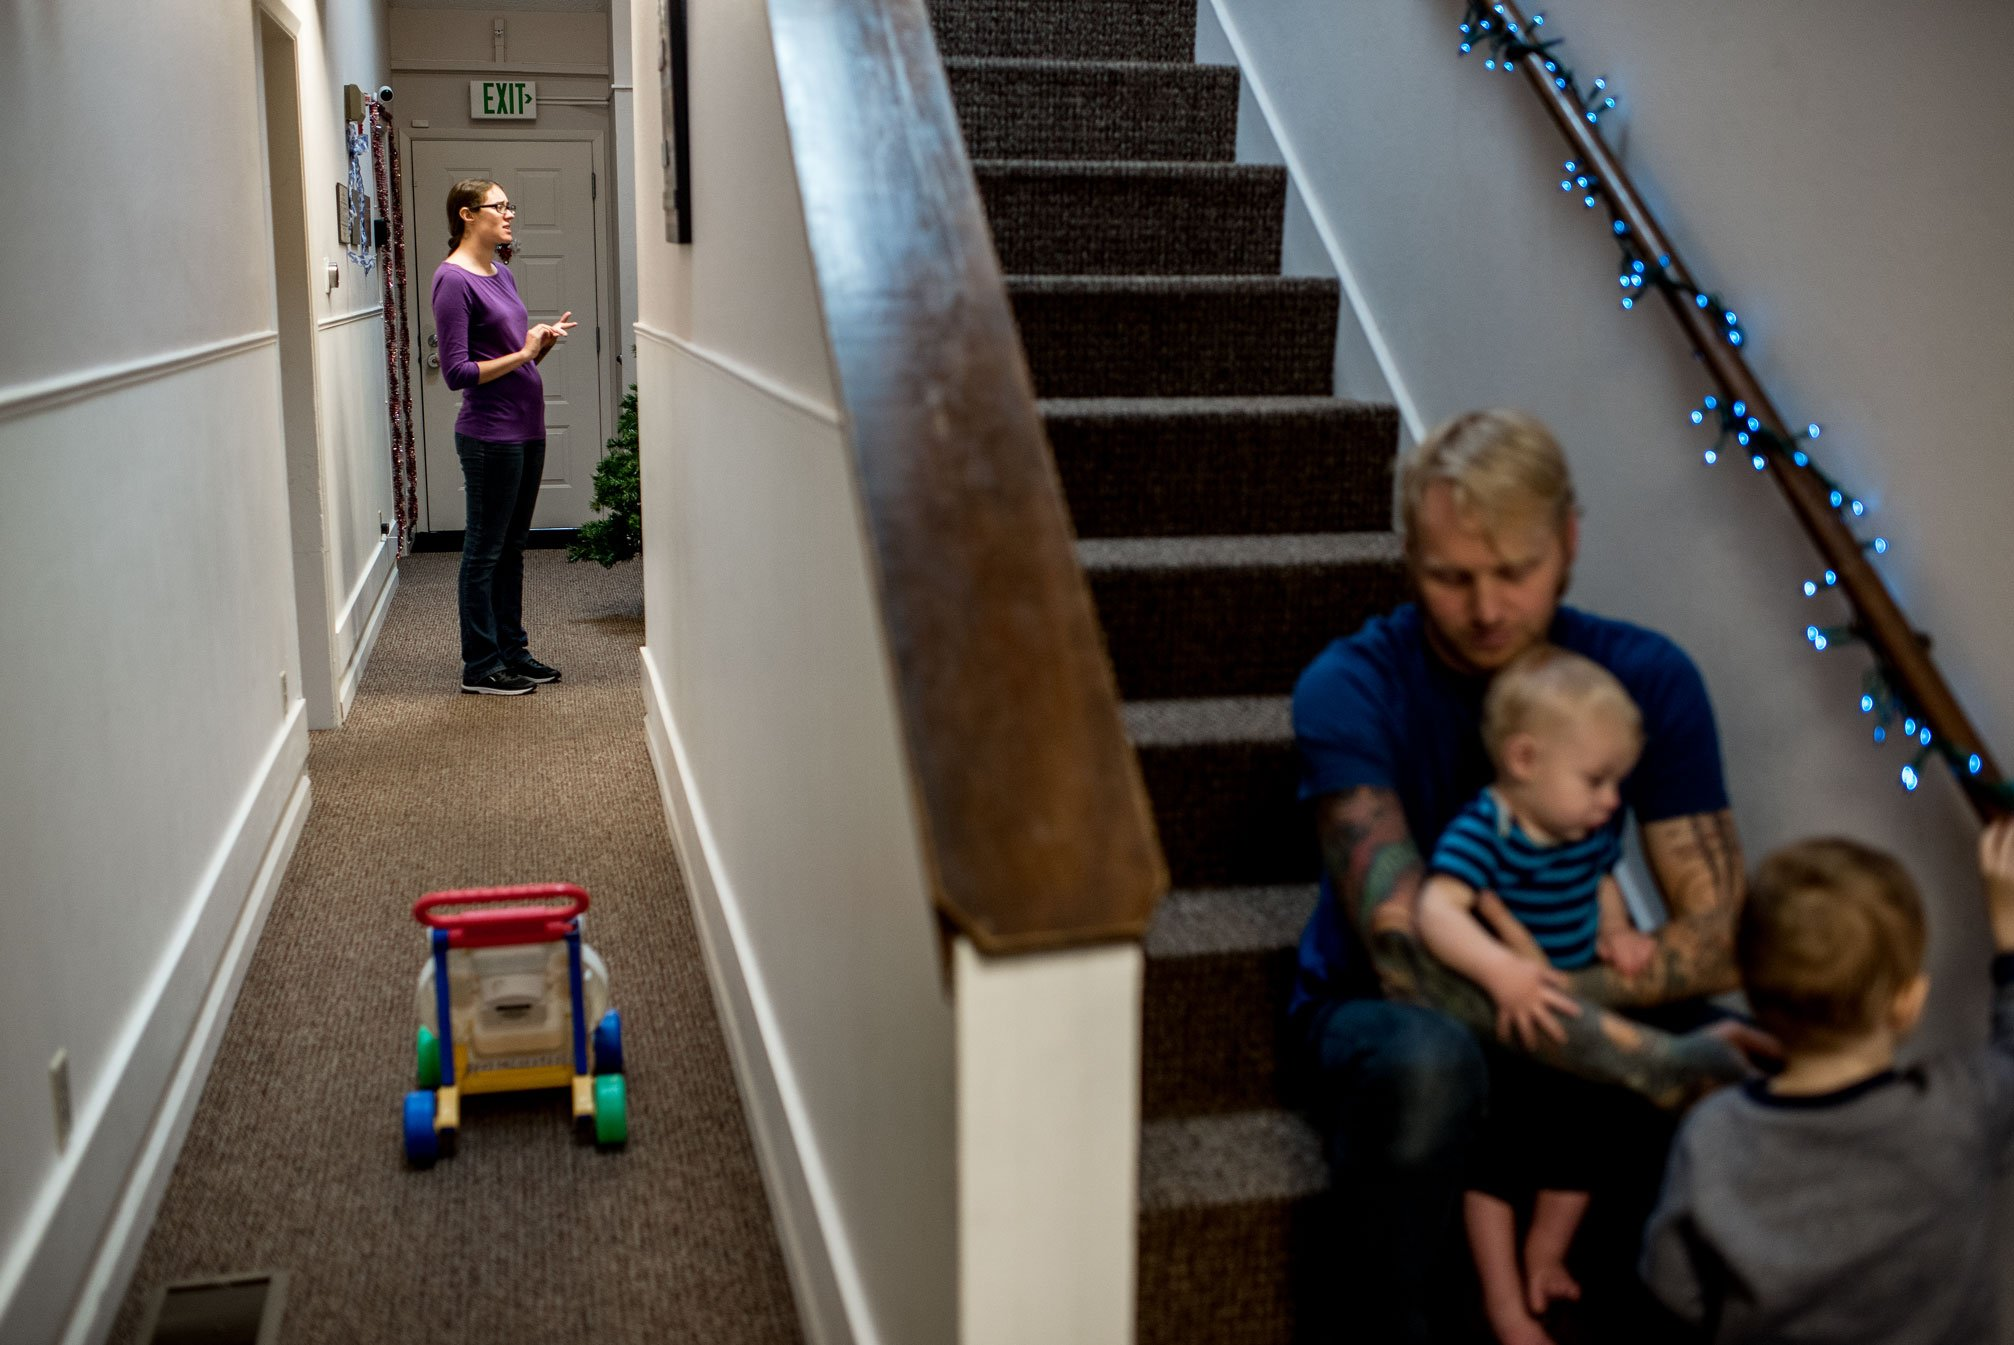 dad on stairs playing with kids mom on phone